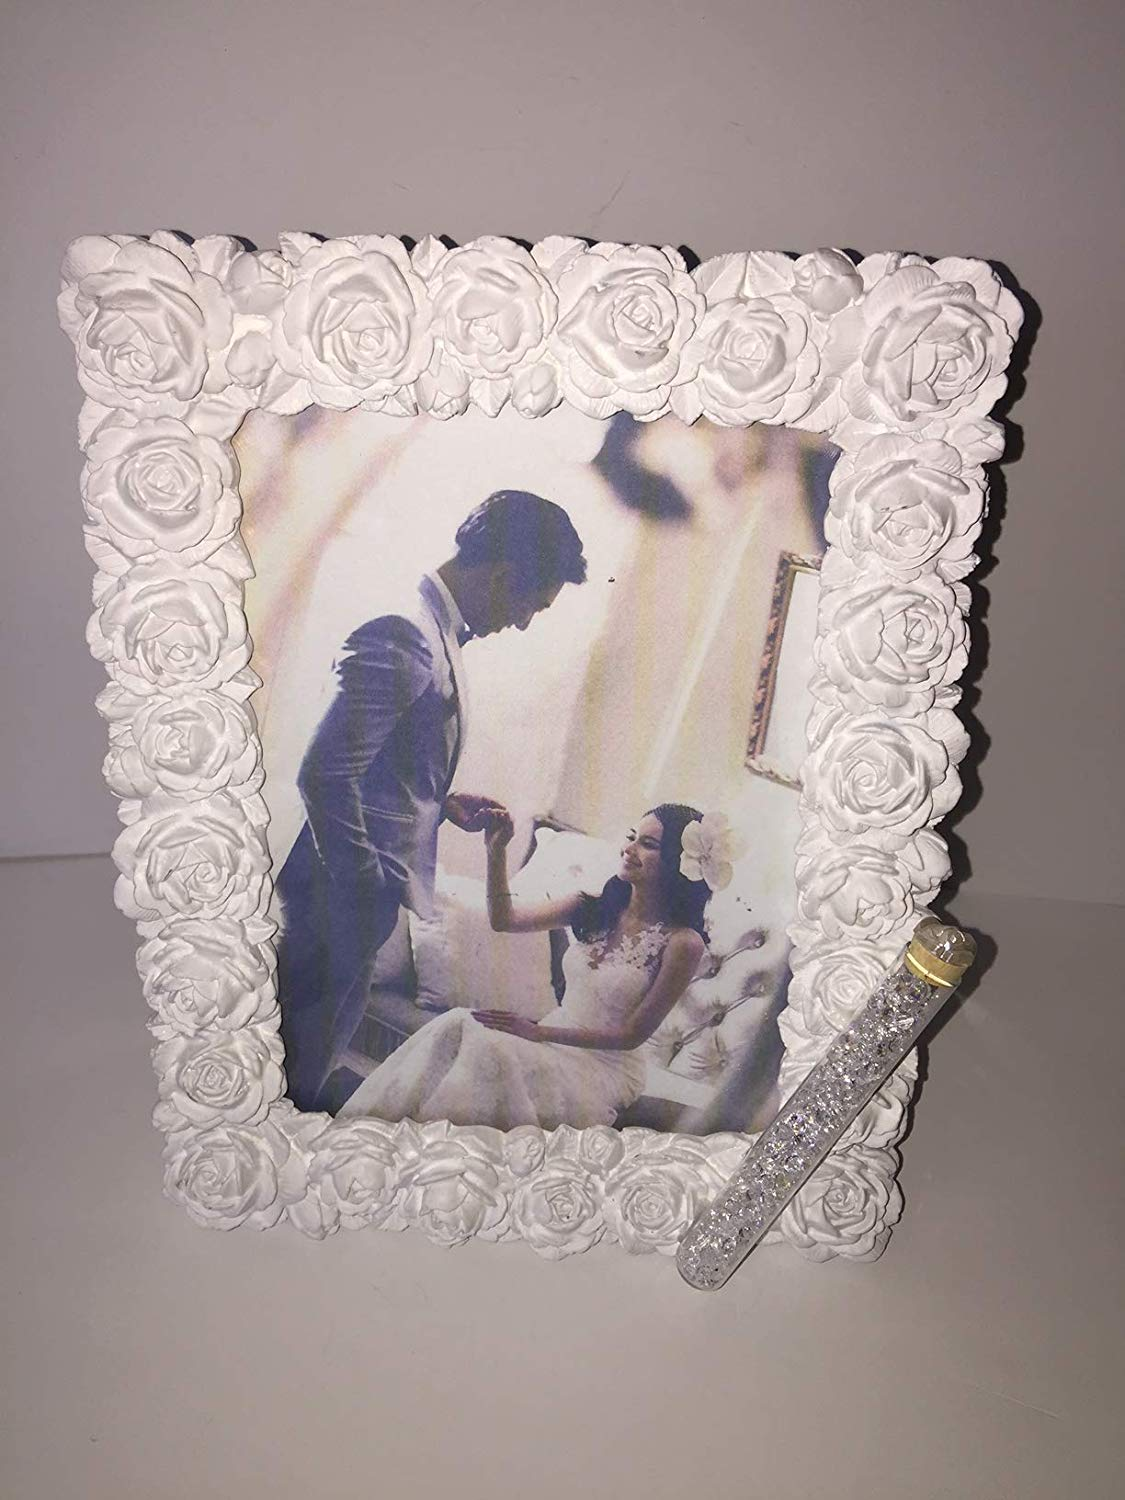 Jewish Wedding White Roses Photo Picture Frame With a Container for Broken Wedding Glass, 5 x 7 Picture Bridal Shower Or Wedding Gift